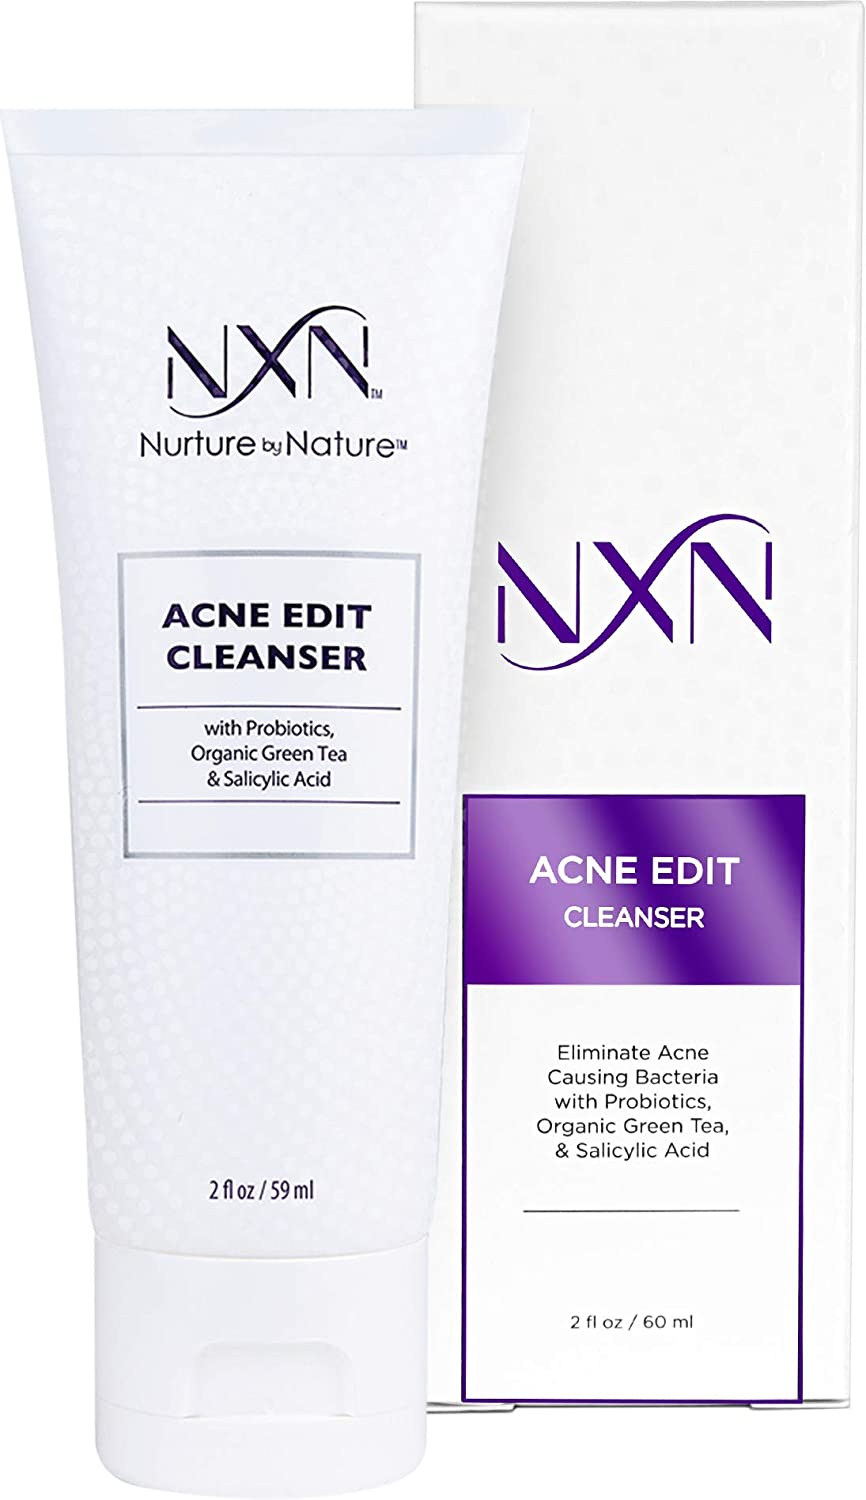 NxN Acne Facial Cleanser - Face Wash with Salicylic Acid, Green Tea & Probiotics to Heal Skin, Prevent Blemishes & Breakouts